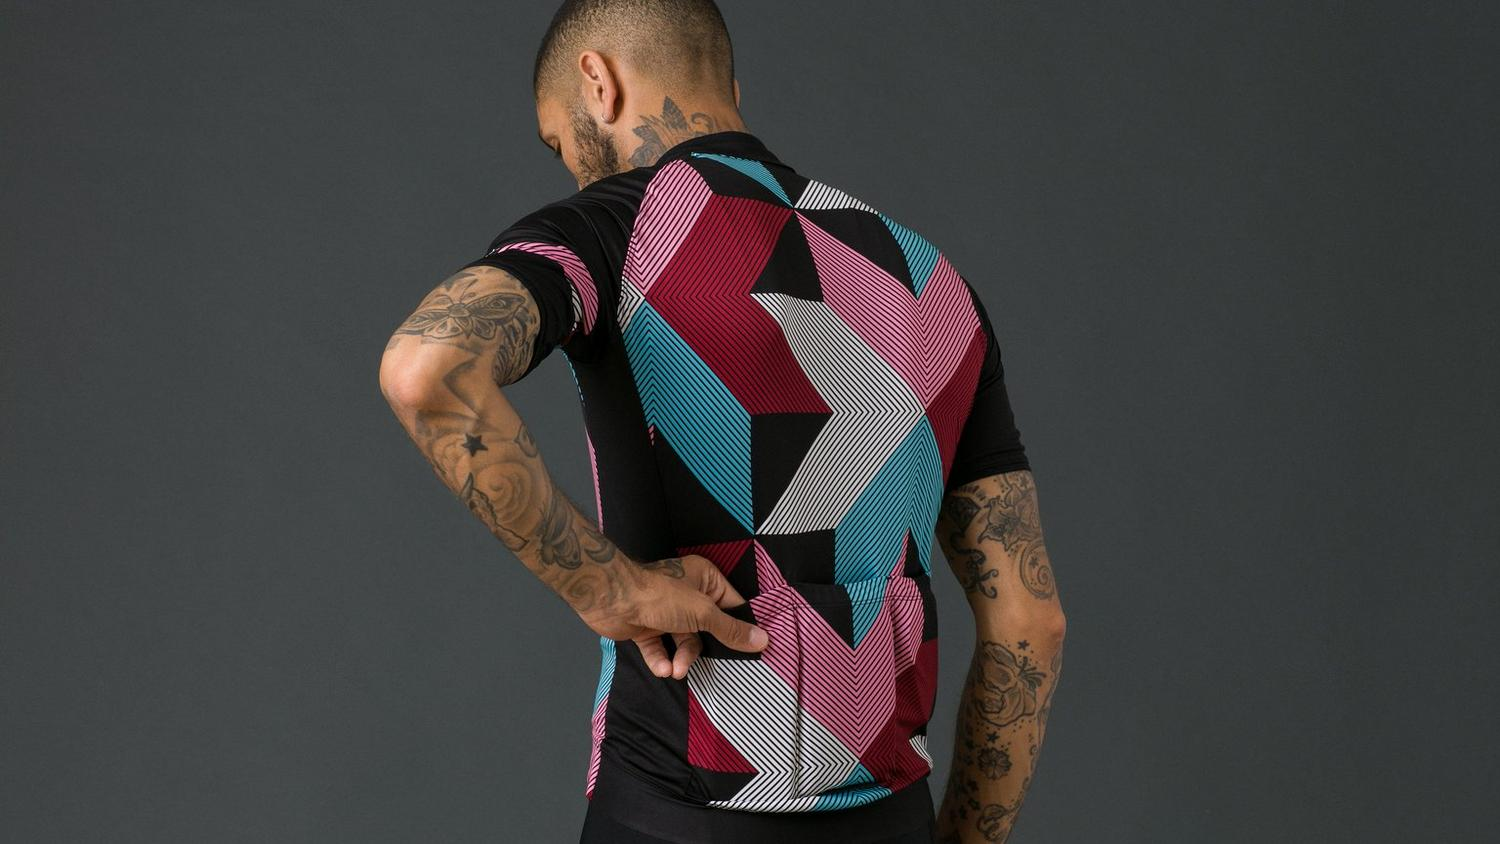 """d9b713d78 Rapha, known for its performance and classically styled cycling wear, puts  """"hundreds of items"""" on sale through Cyber Monday. The sale includes city  and club ..."""